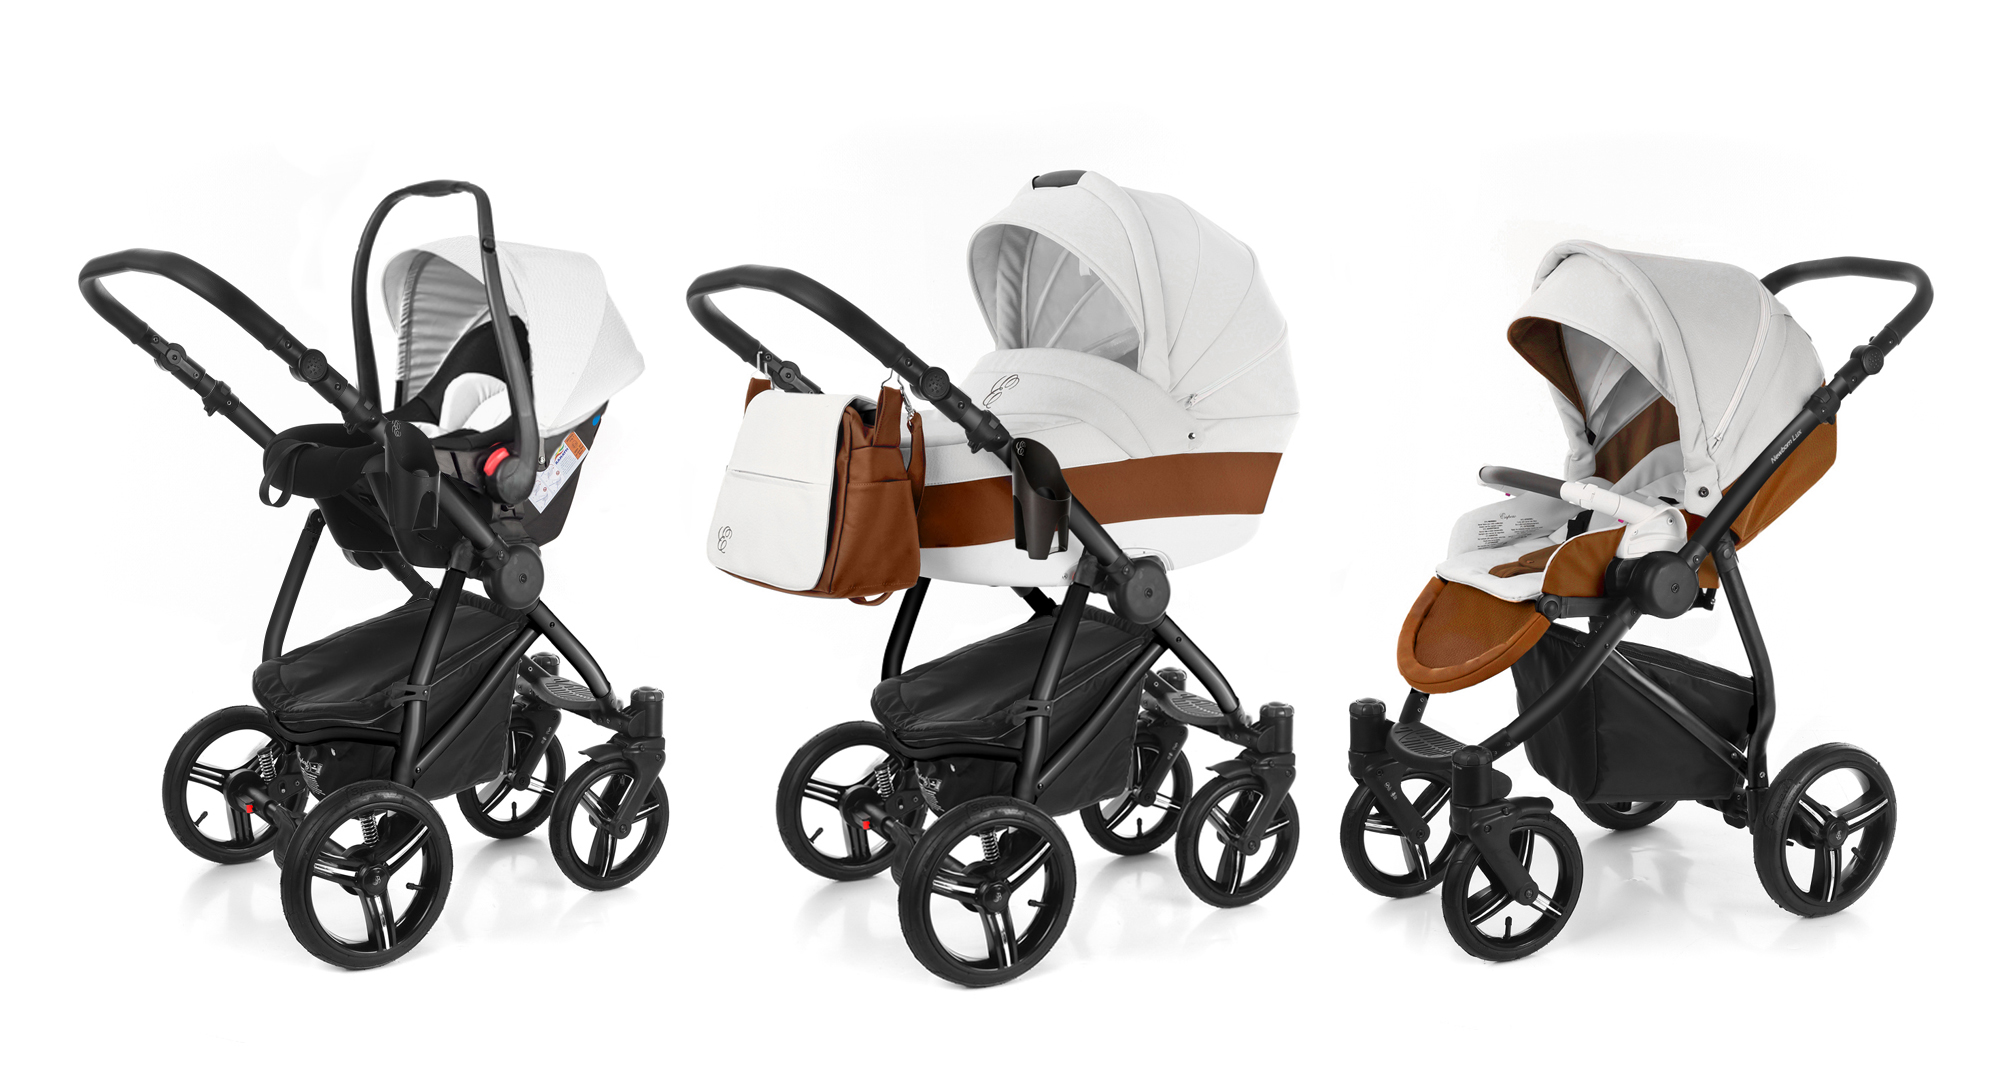 Коляска 3 в 1 Esspero Grand Newborn Lux (шасси Black). Фото N3